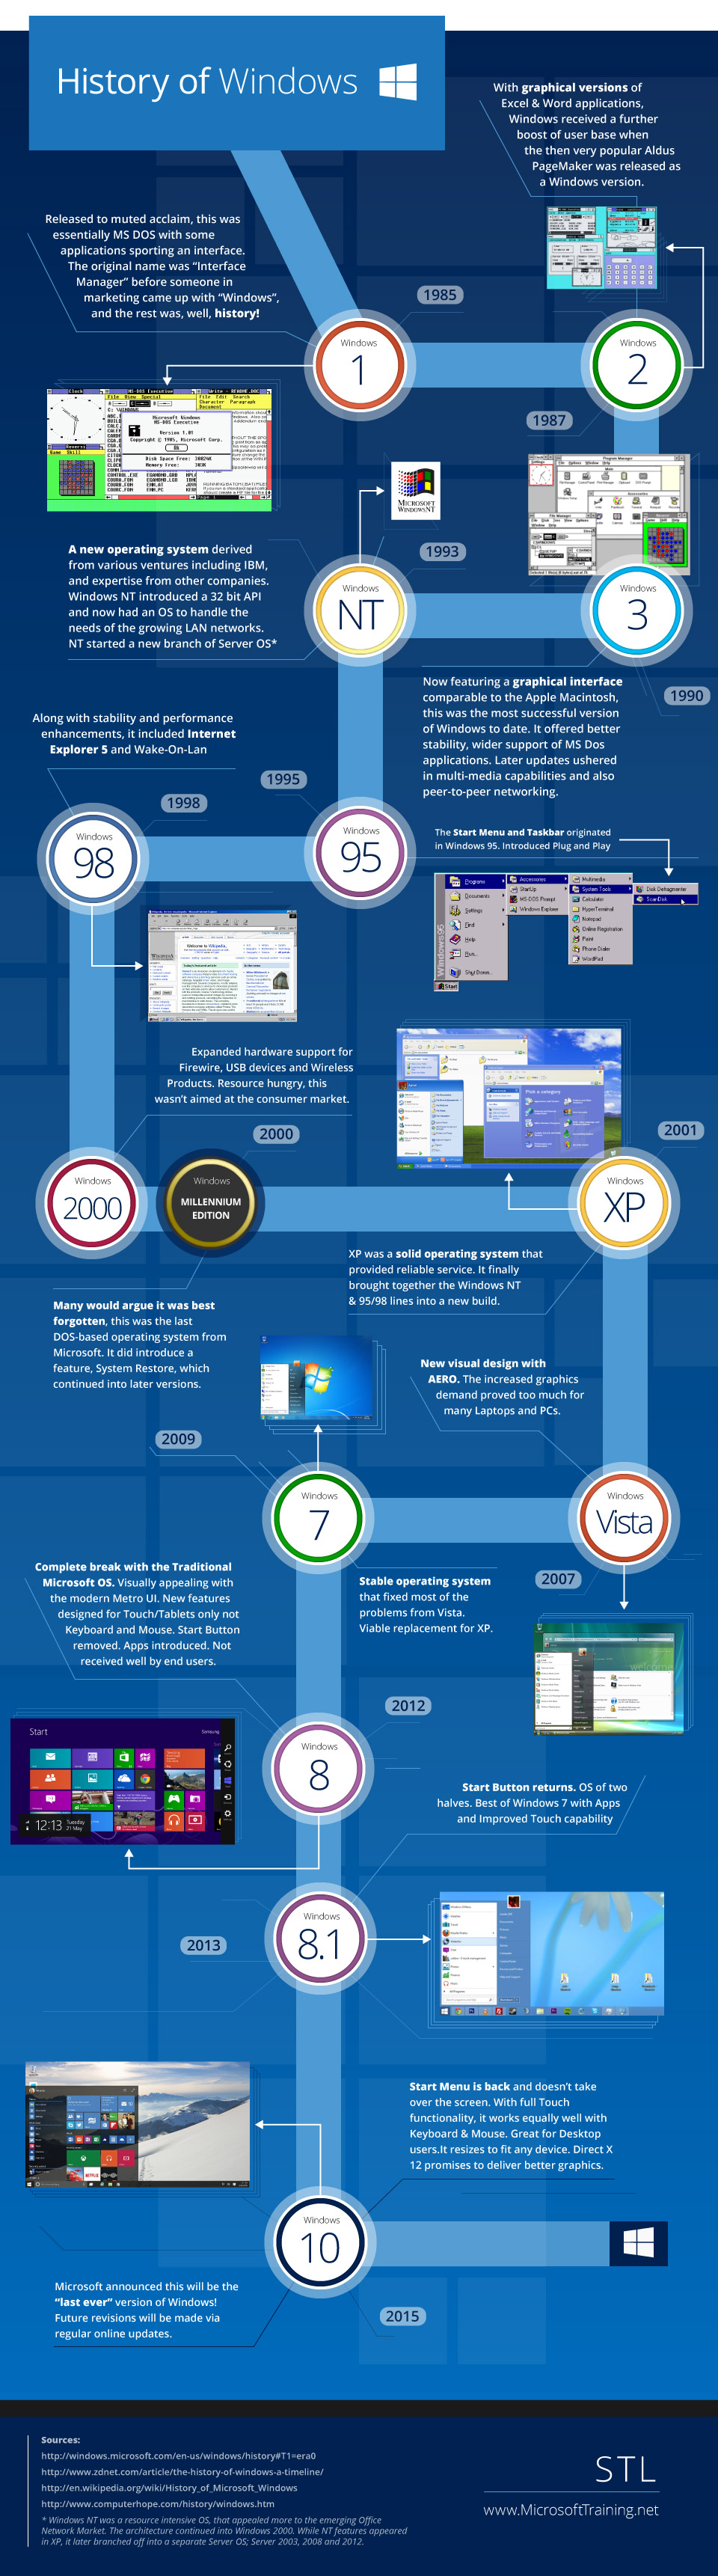 History-of-Microoft-Windows